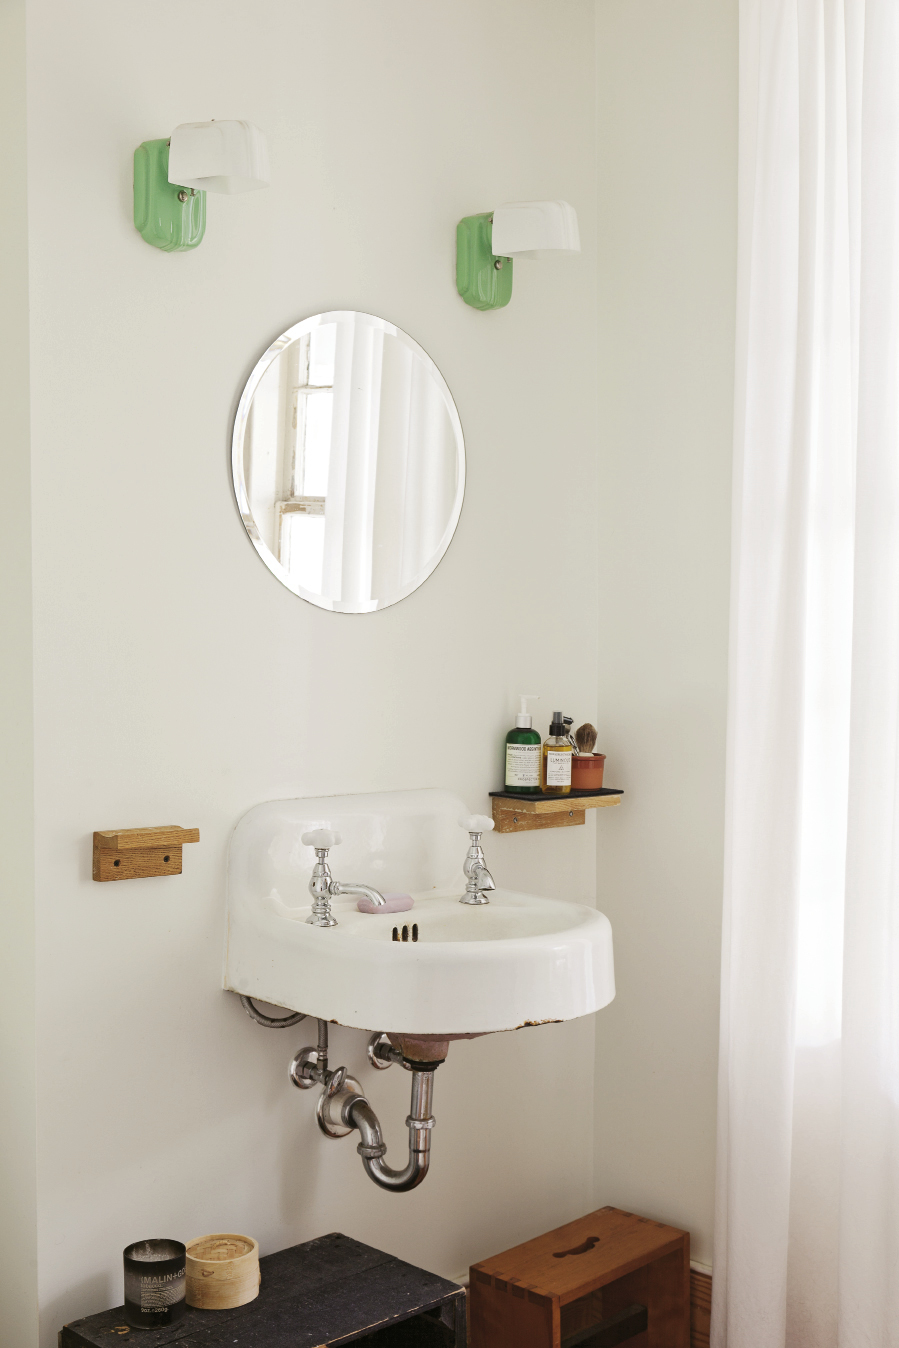 In the bath, retro-inspired sconces suit the original sink.